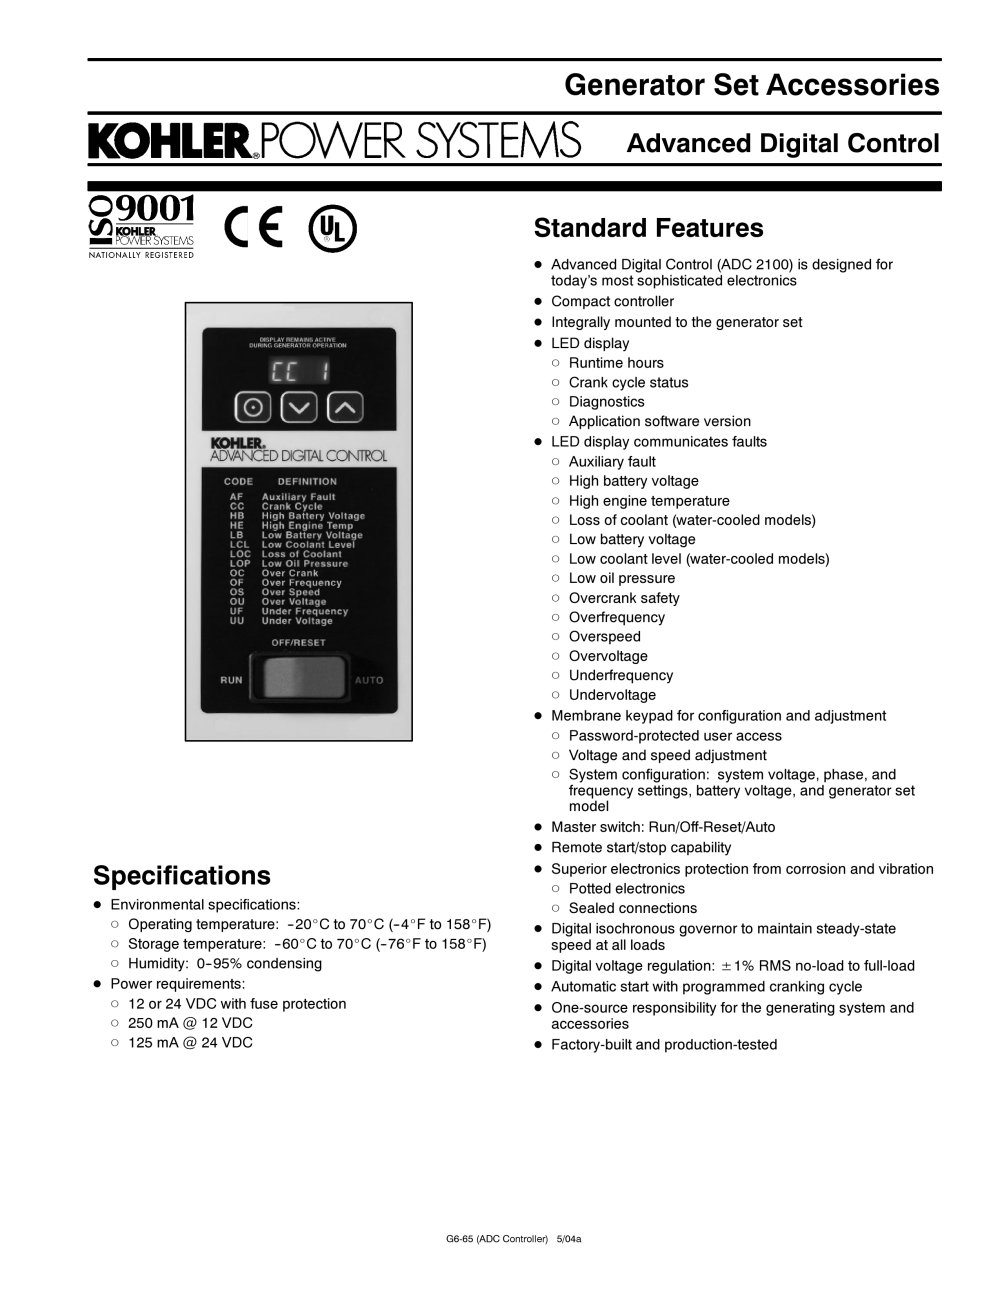 Kohler Decision Maker Manual 2007 Polaris Sportsman 500 Adc Wiring Diagram Page 79 92 Array Advanced Digital Control Power Systems Pdf Catalogue Rh Directindustry Com